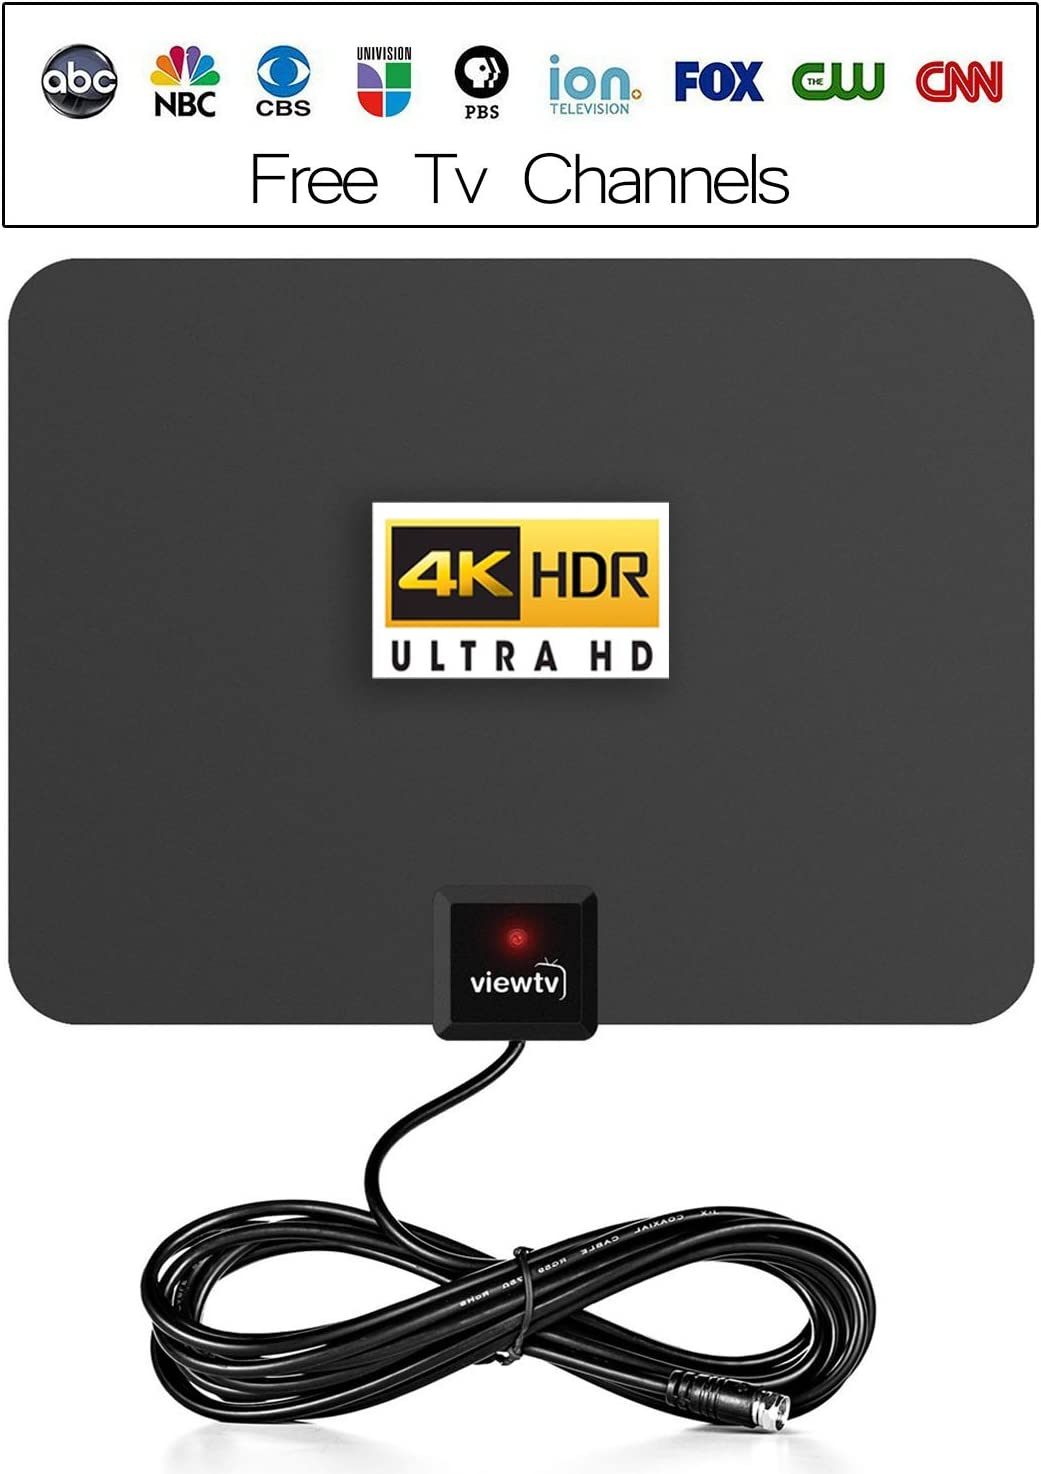 ViewTV 50 Mile Digital TV Antenna Flat Indoor Amplified HDTV - UHF/VHF 1080P Channels w/Detachable Signal Amplifier - 10 FT Copper Coaxial Cable - Black